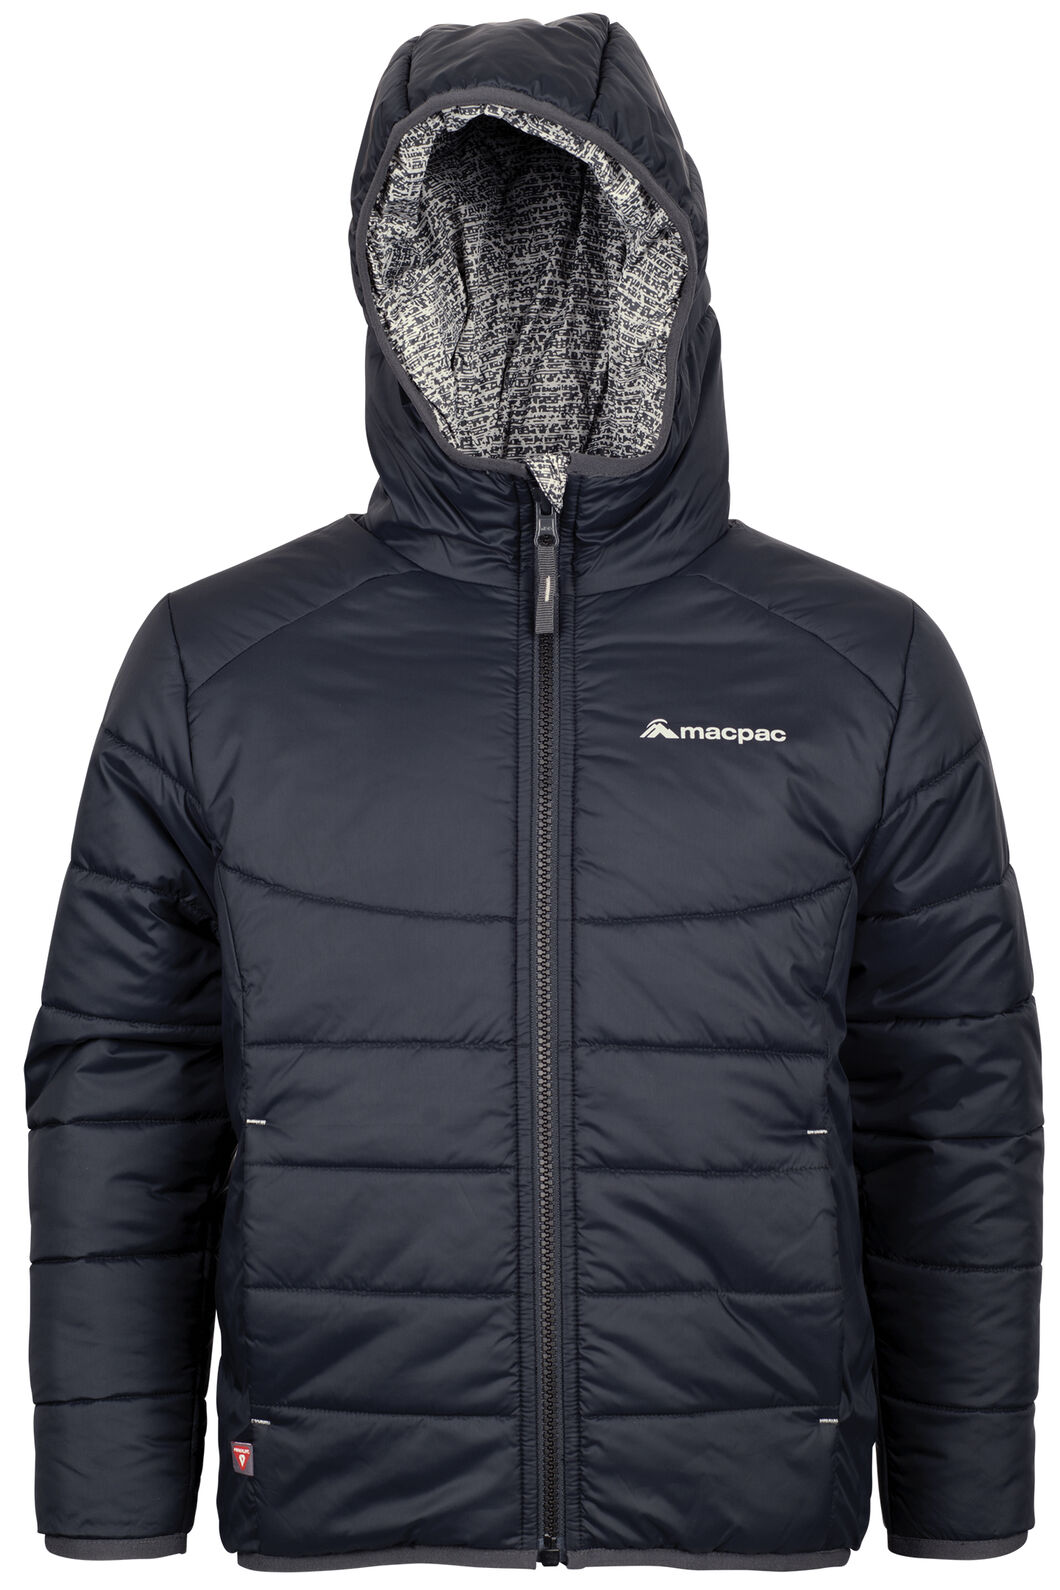 Macpac Pulsar Hooded Primaloft® SILVER Jacket - Kids', Black Iris/Barbados, hi-res